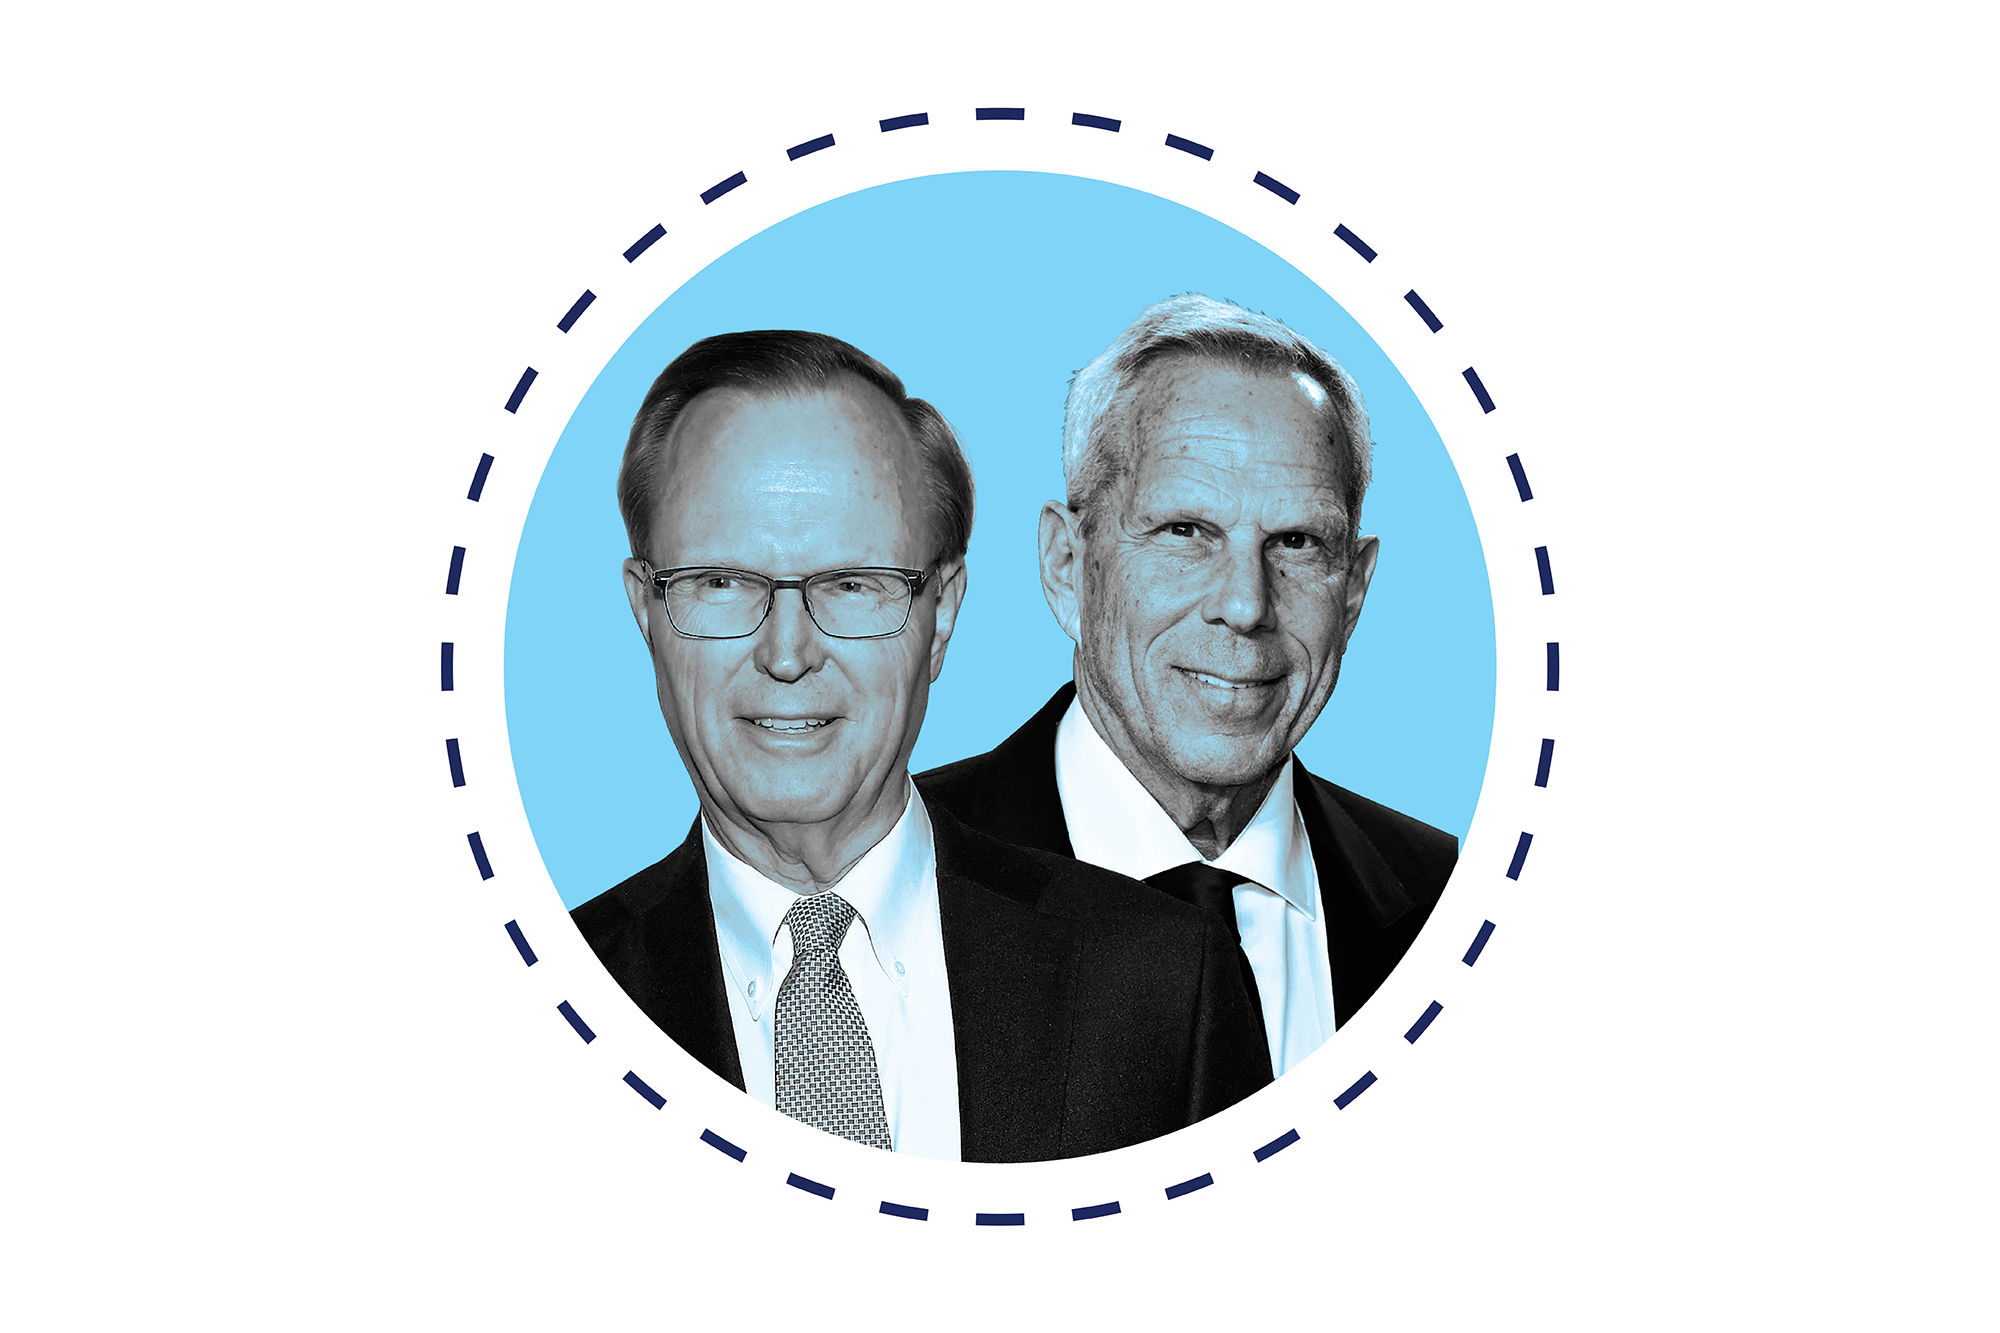 New York Giants Owner: John Mara, Steve Tisch net worth, political donations